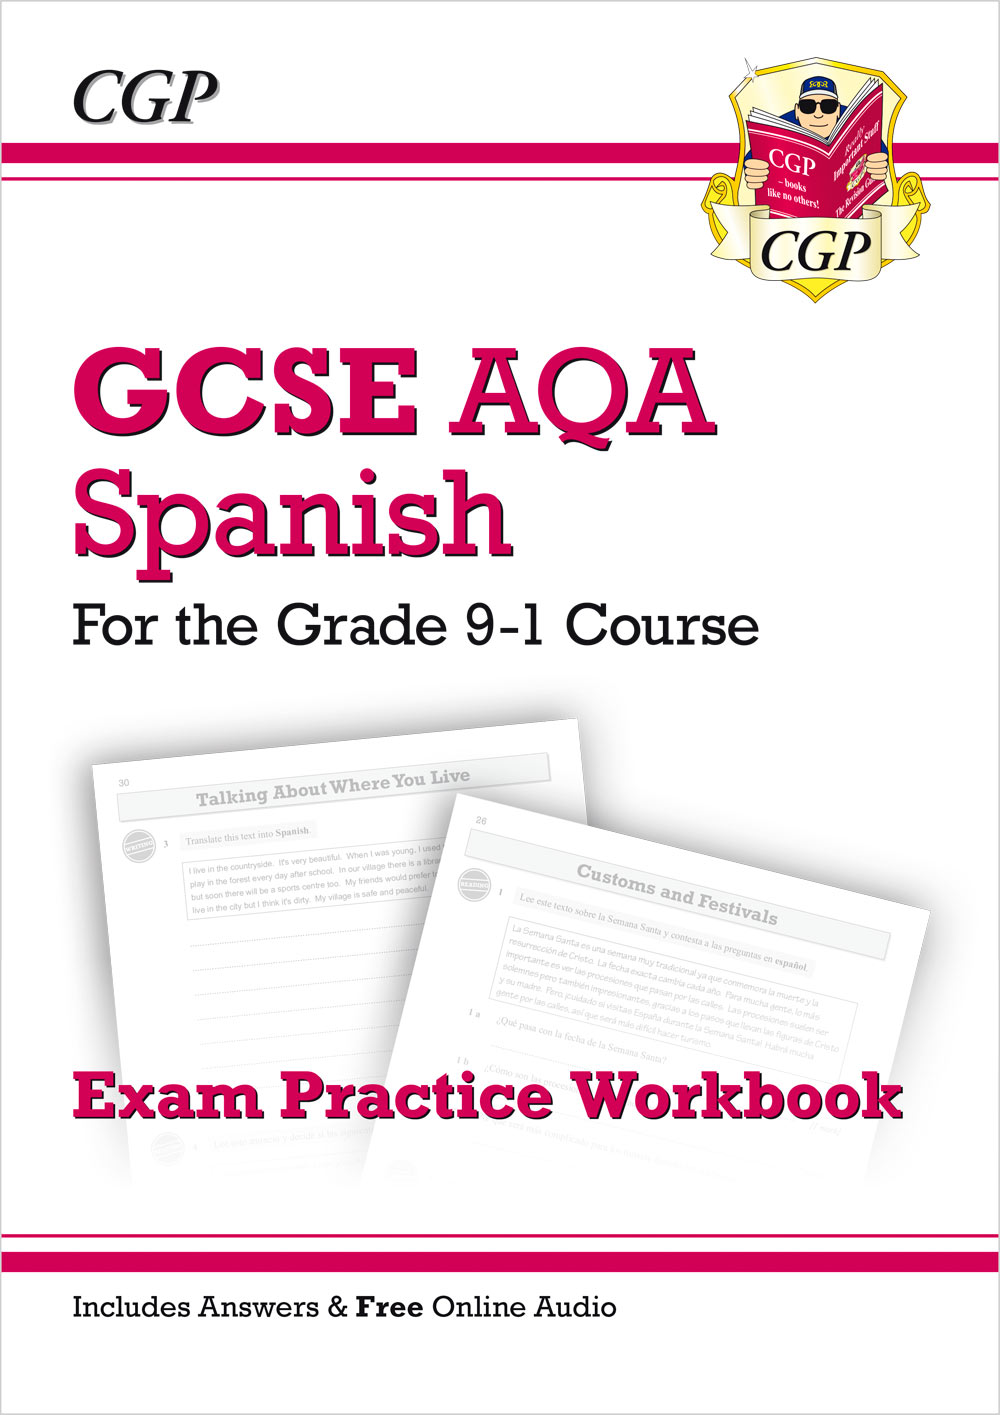 SPAQ41 - New GCSE Spanish AQA Exam Practice Workbook - for the Grade 9-1 Course (includes Answers)